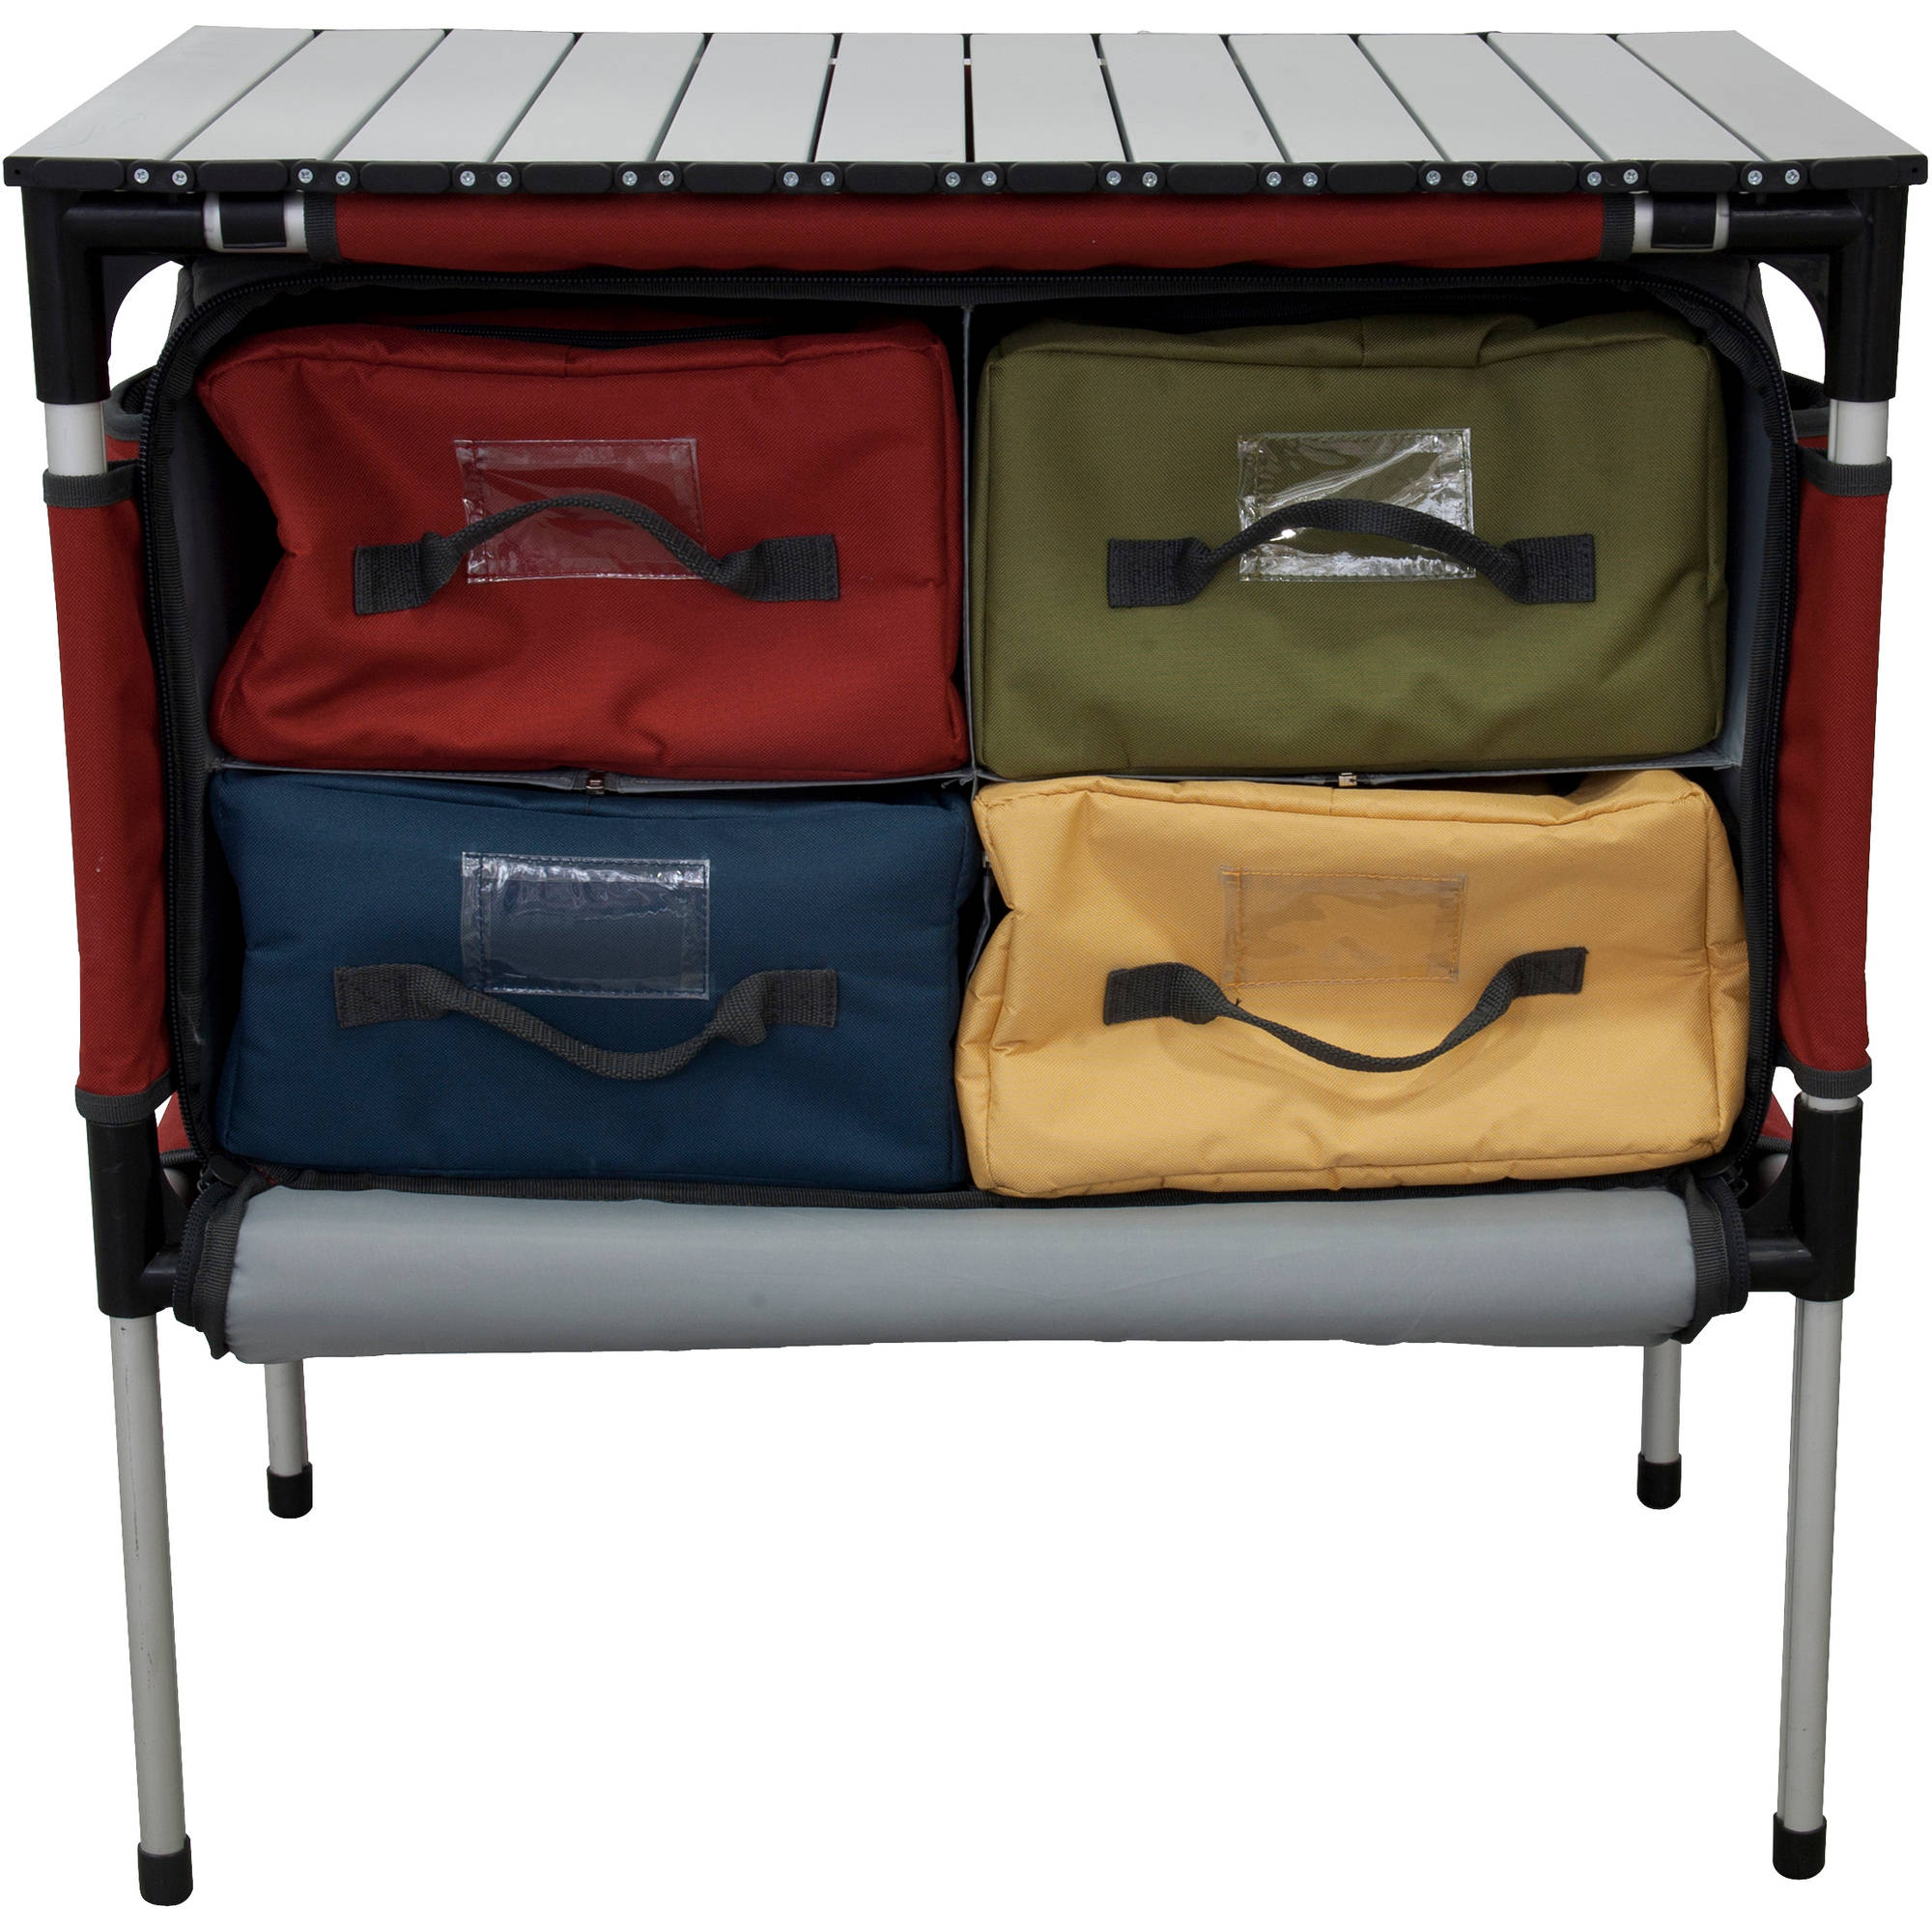 Camp Chef MSTAB Sherpa Outdoor Camping Table & Organizer by Camp Chef